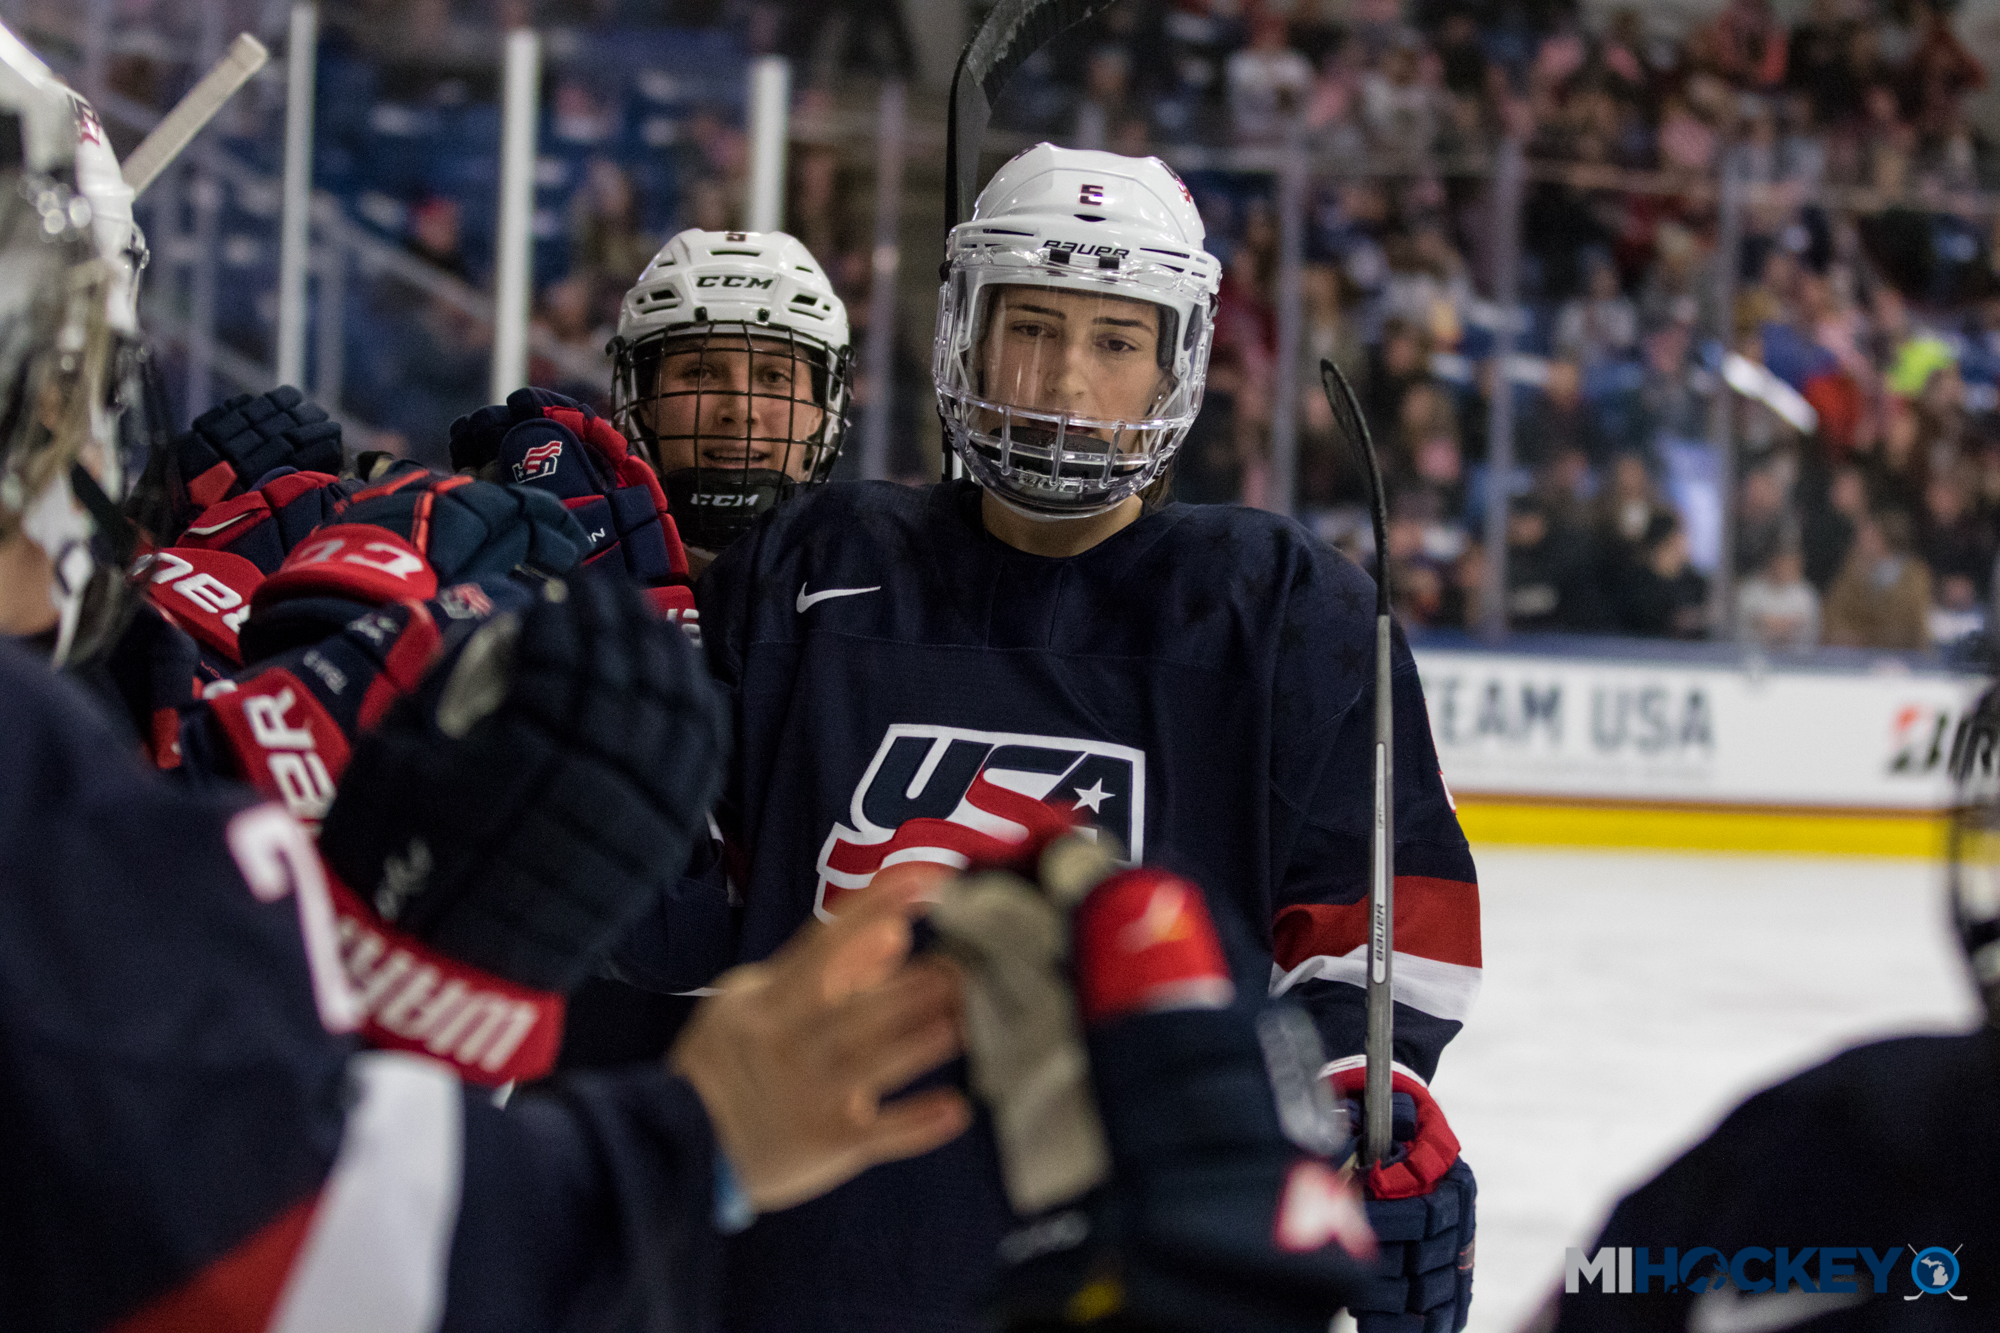 USA Hockey announces roster for 2018 U.S. Women's National Team Evaluation Camp